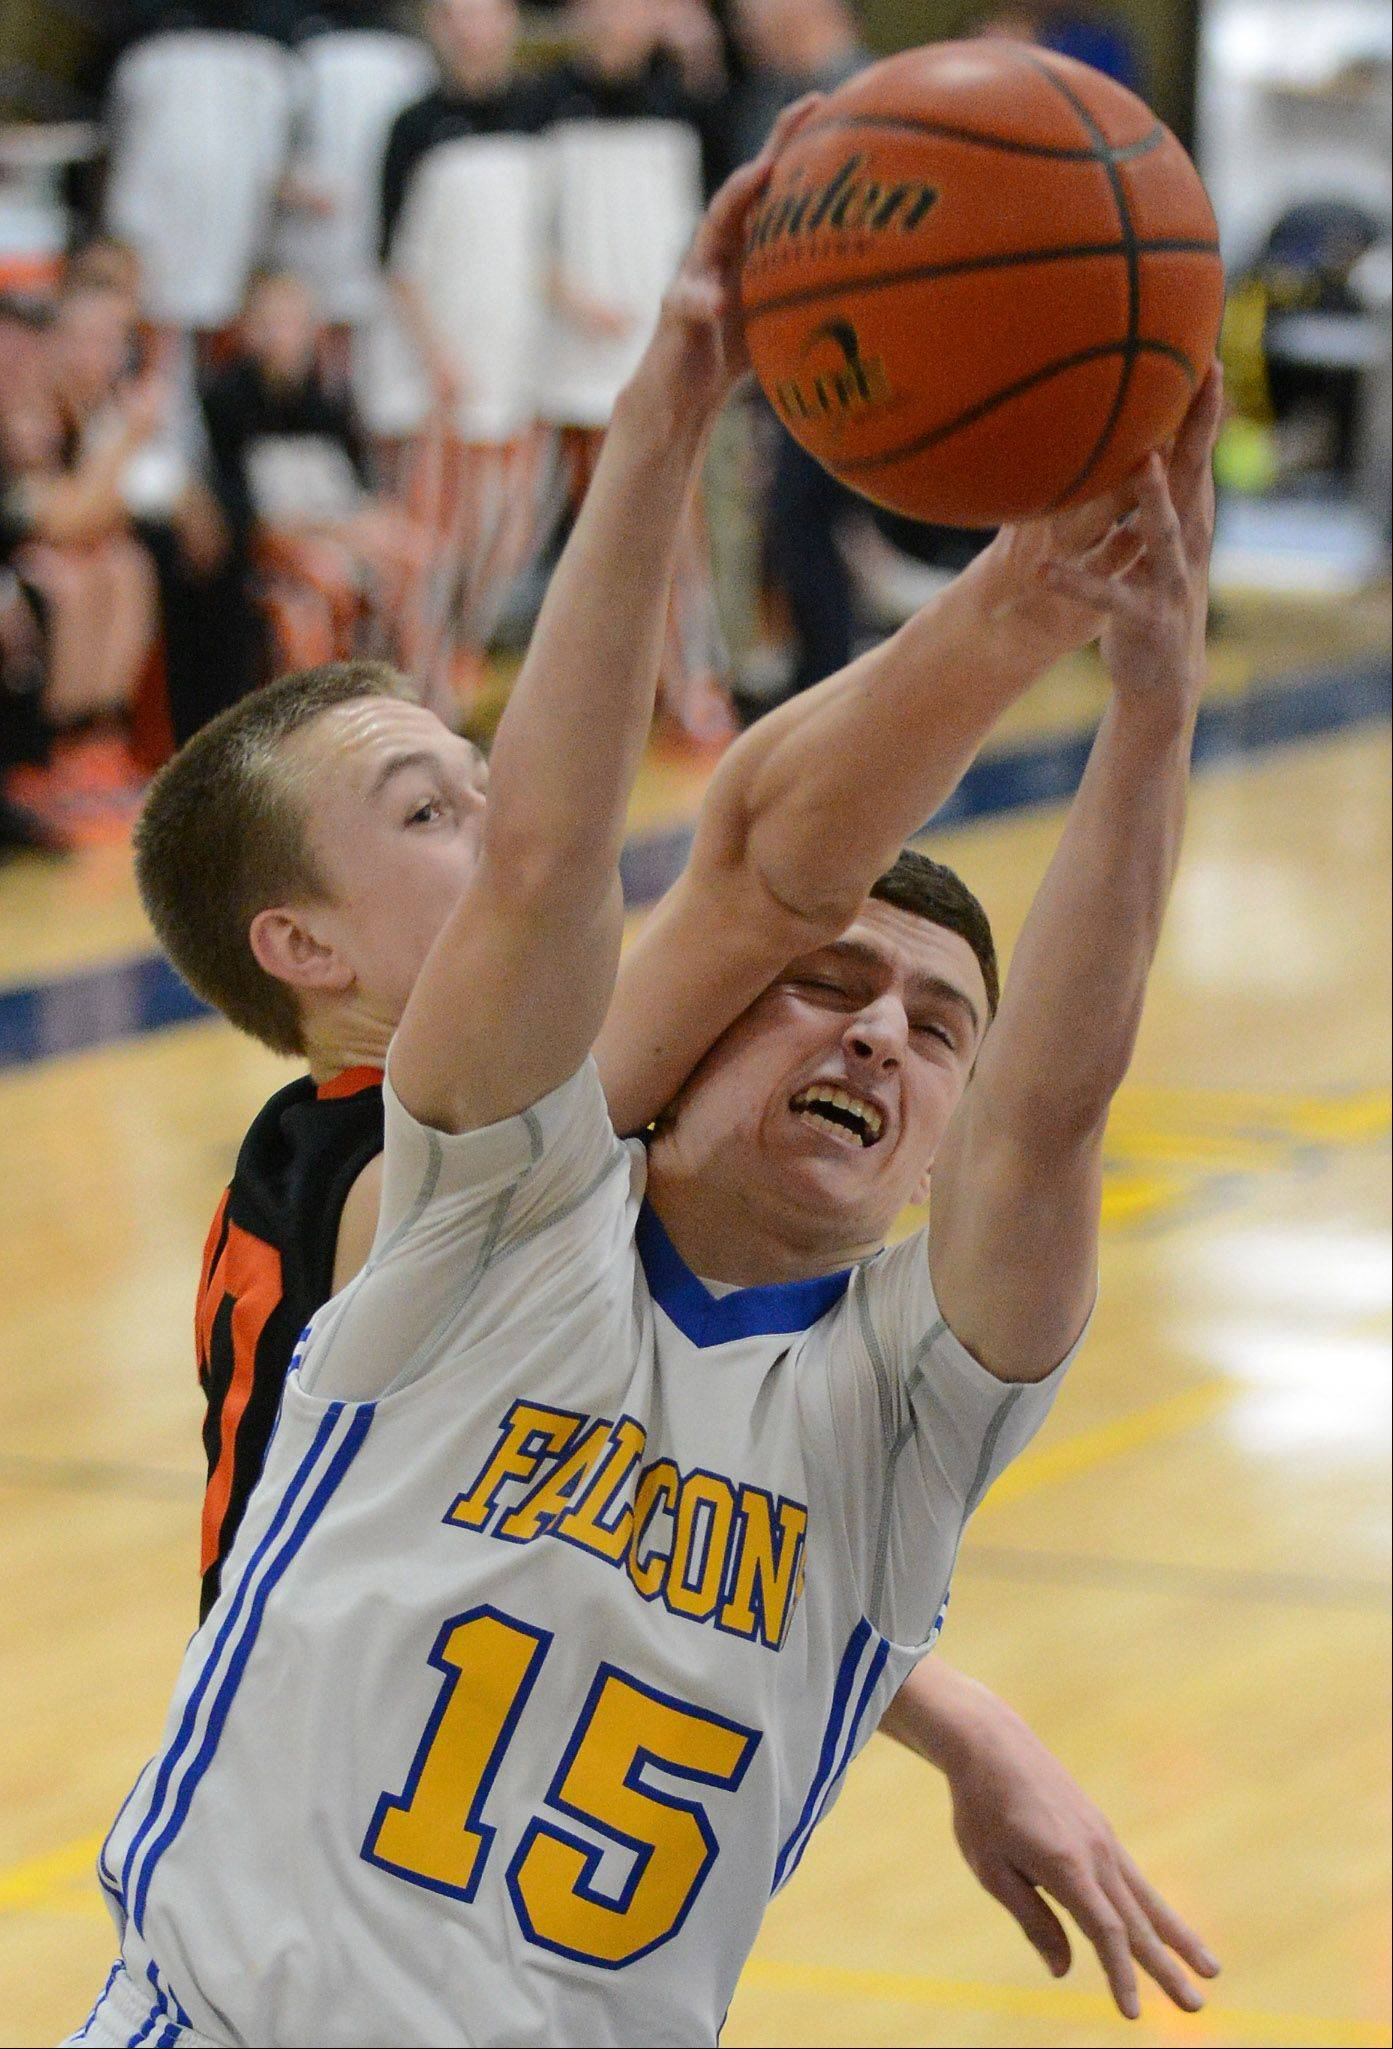 Wheaton North's Nick Jordan grabs a rebound in front of Wheaton Warrenville South's Chris Simpson.